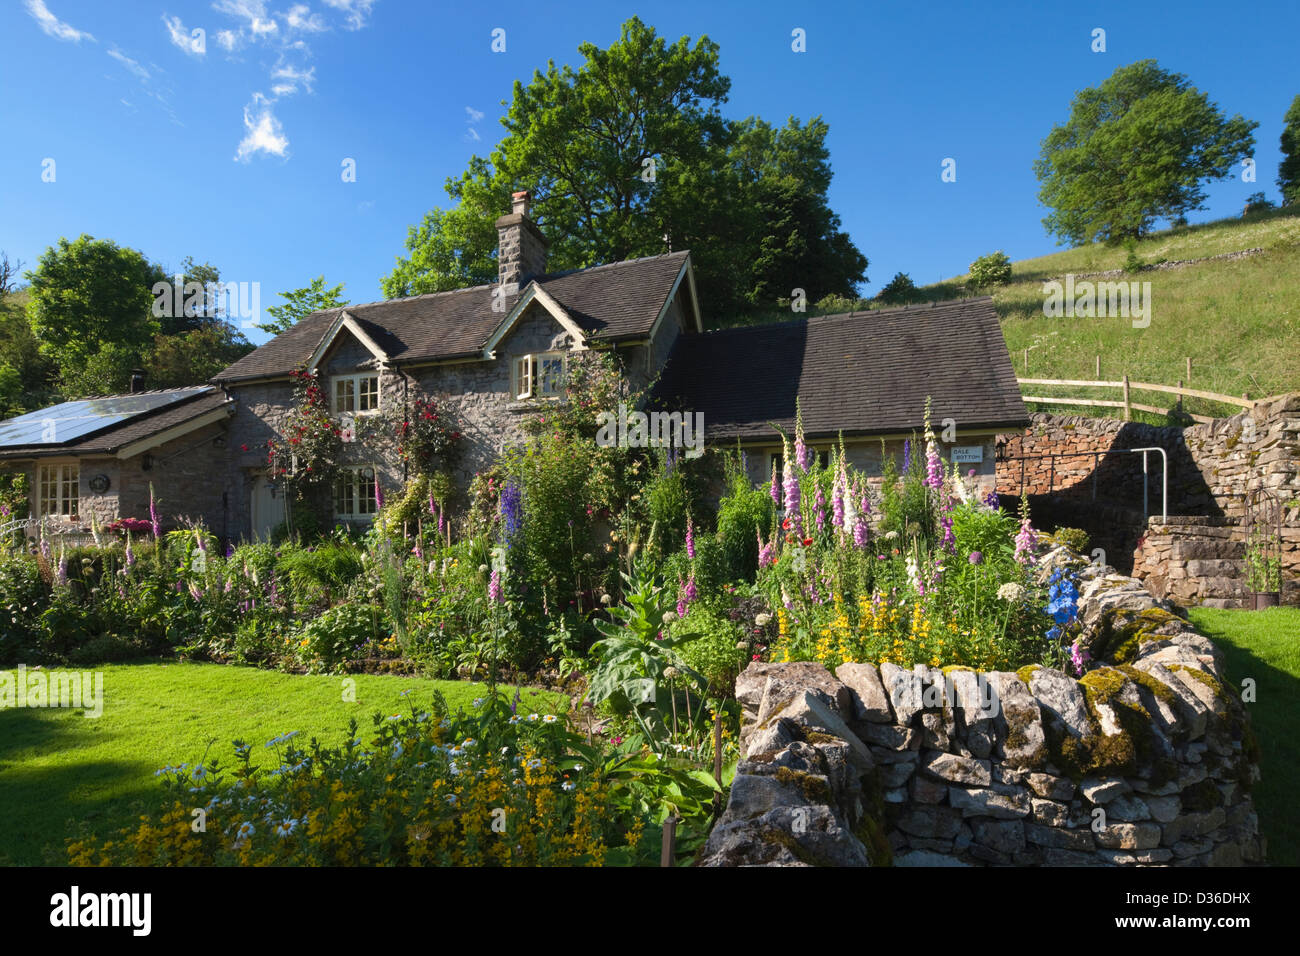 Cottage, Peak District, Derbyshire, England - Stock Image